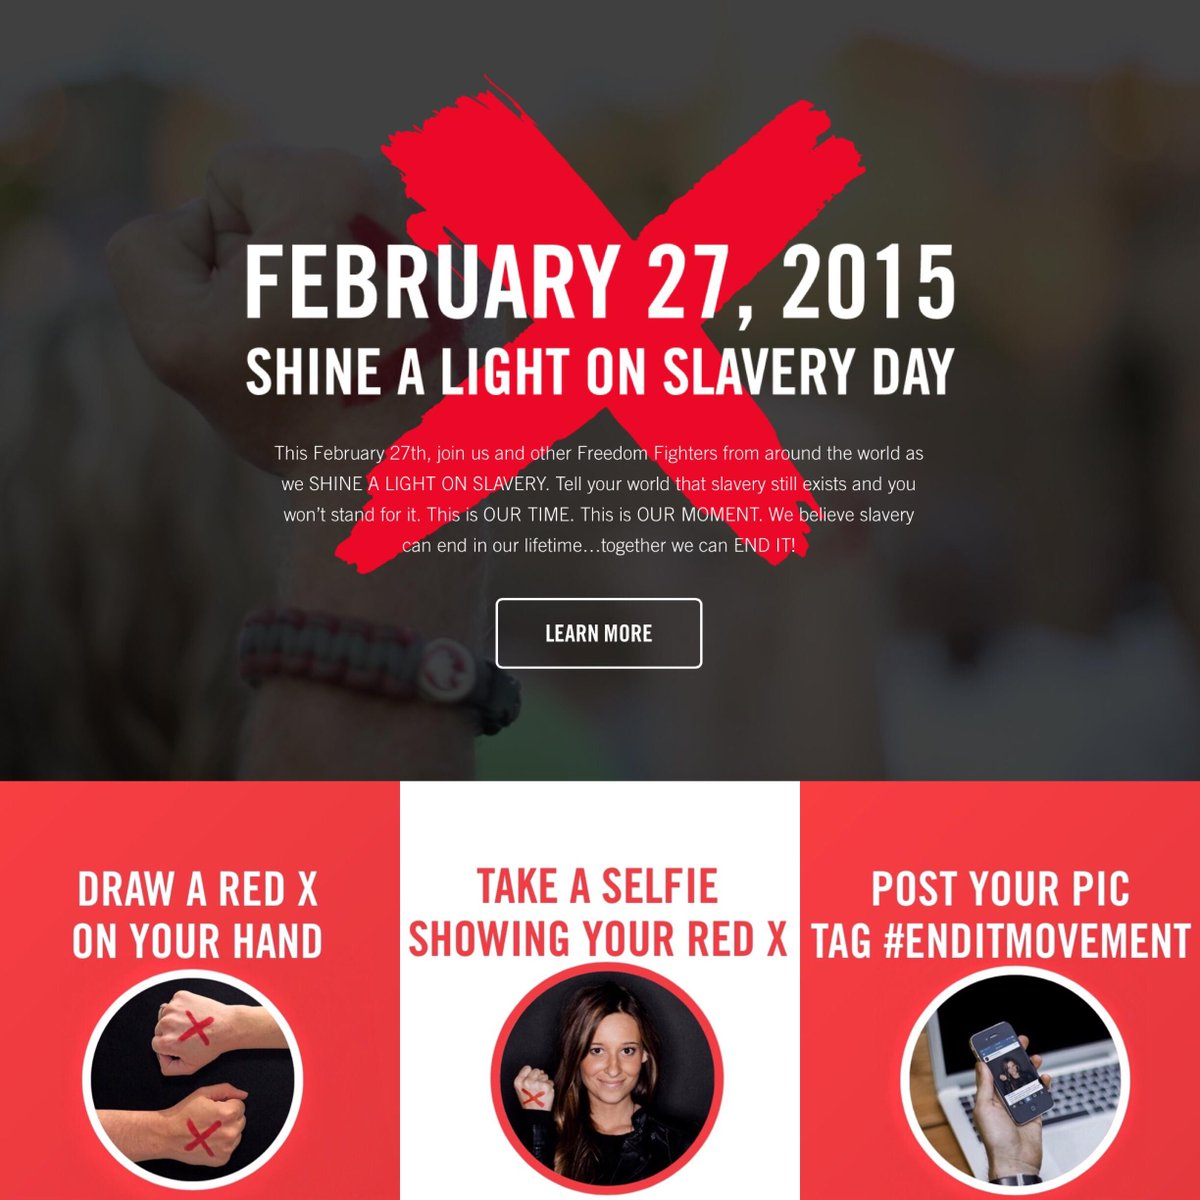 It's Shine A Light On Slavery Day! Let's raise our voice for the voiceless! Together, we can END IT. http://t.co/CO3XMIDz3G